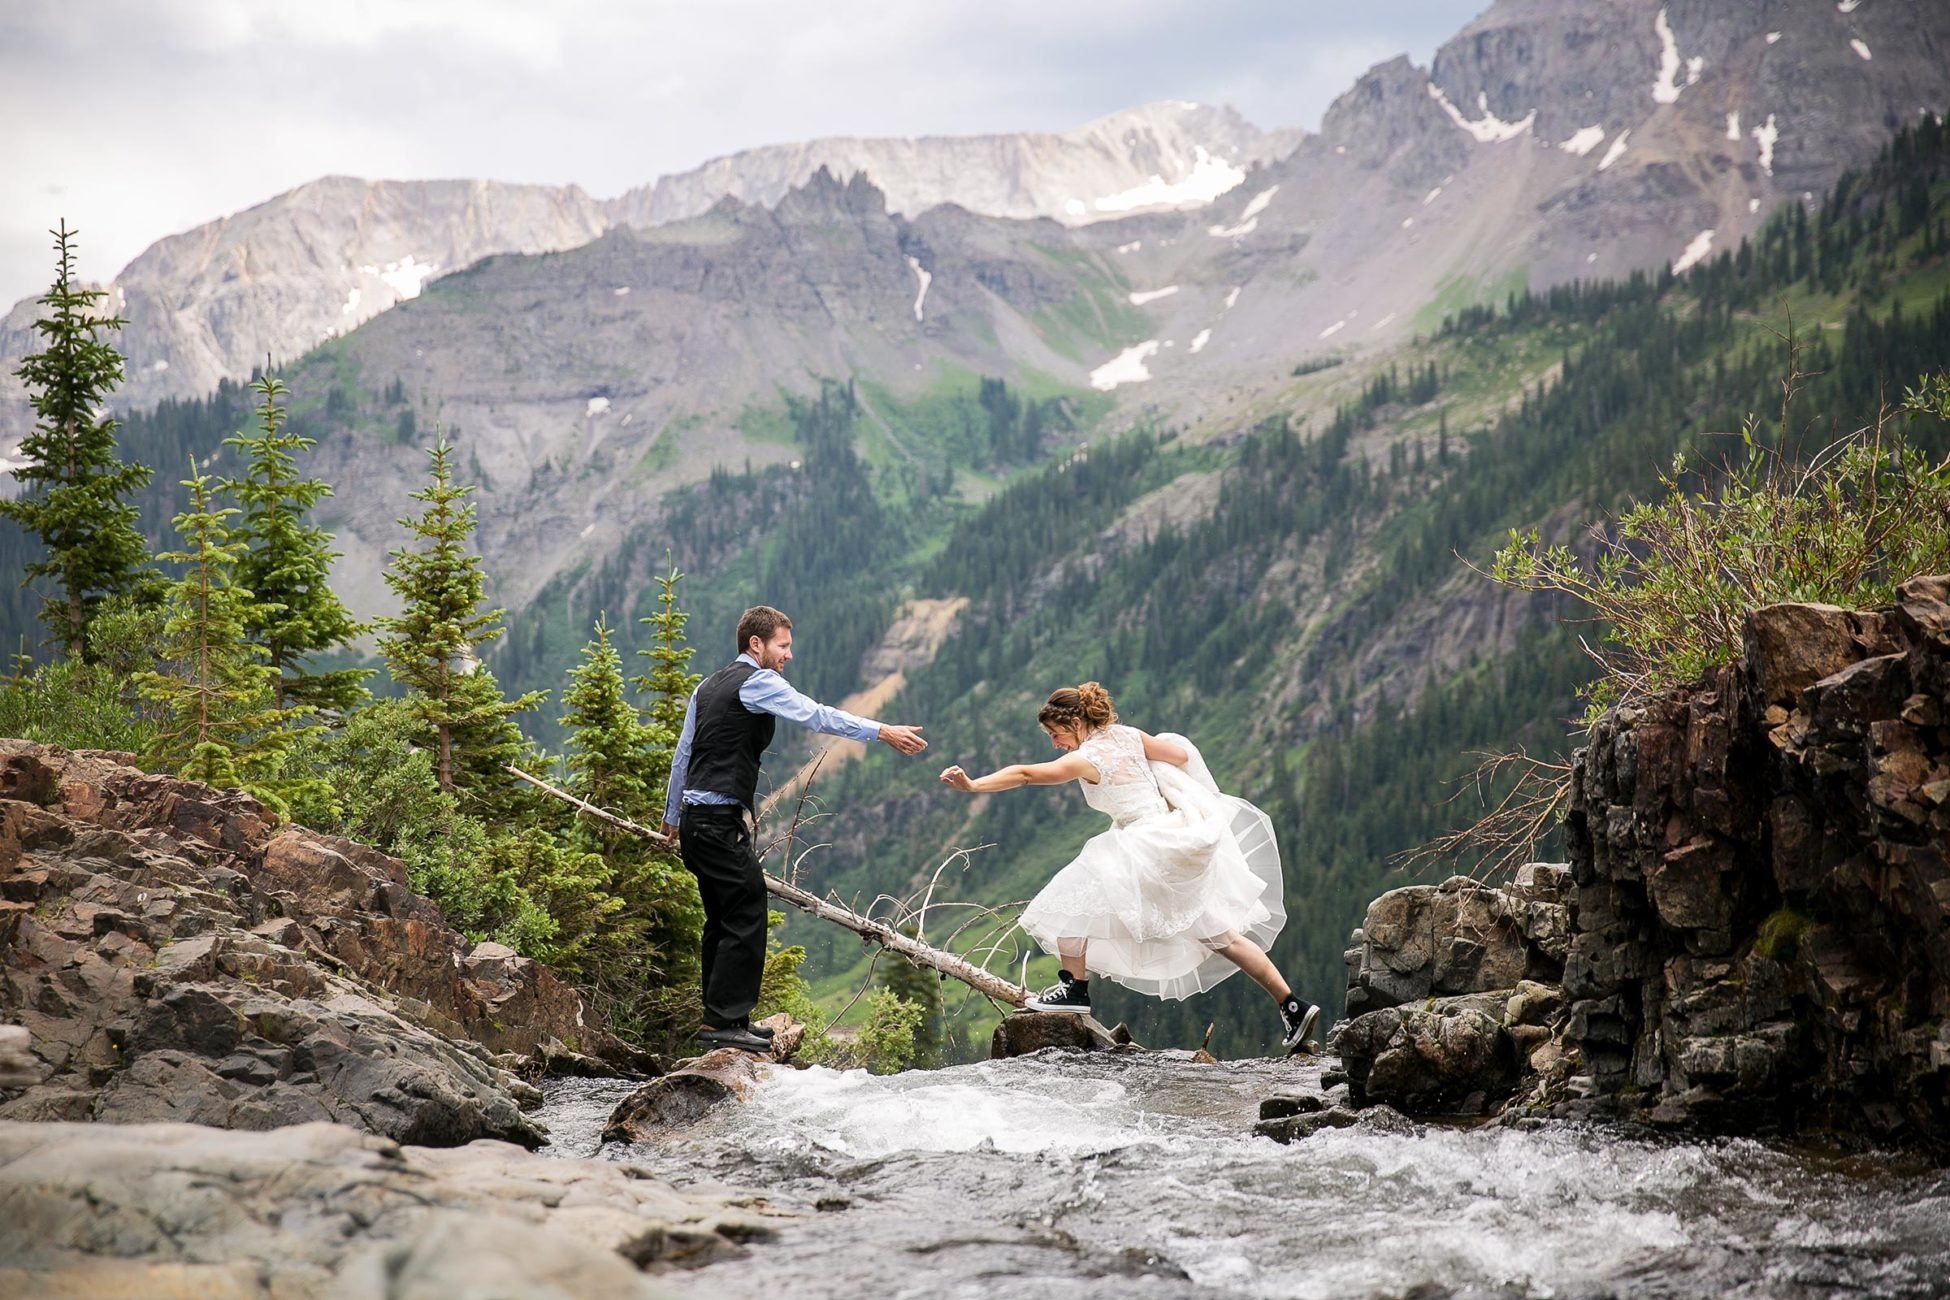 Matt and Angela's outdoor Colorado mountain wedding in Ouray, CO. Floral arrangements by Judi Folga of Willow Creek Floral, music by Funkdafari, and photo booth from Telluride wedding photographer Ben Eng.